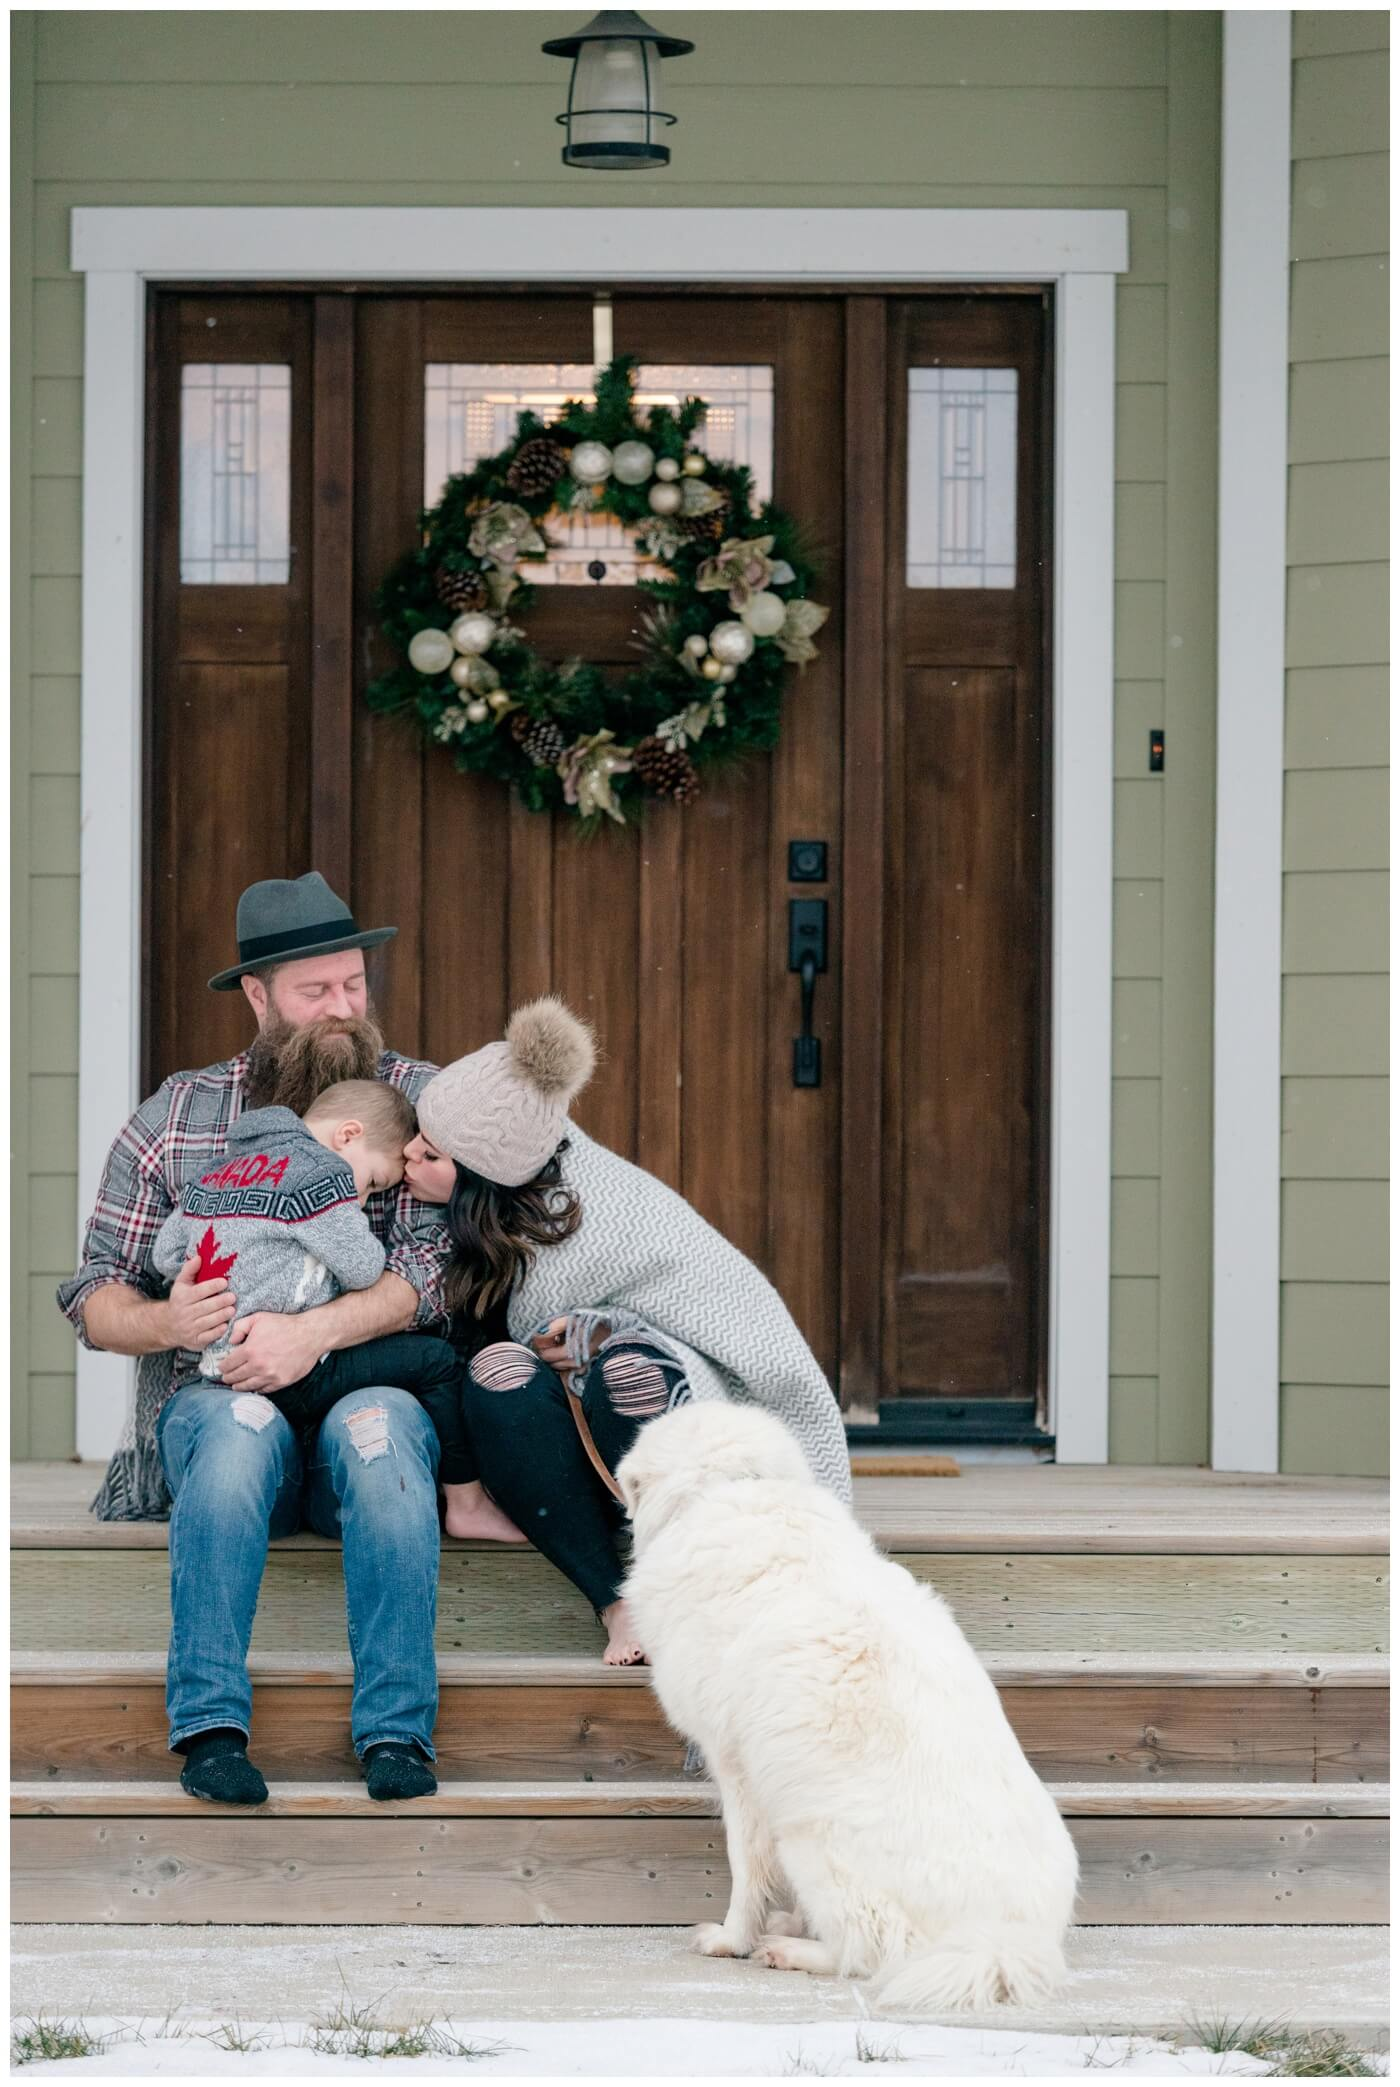 Regina Family Photographer - Keen Family - Dionne-Timothy-Shepherd - In home Family Session - Front Porch Snuggle - Blanket - Barefeet - Pompom Toque